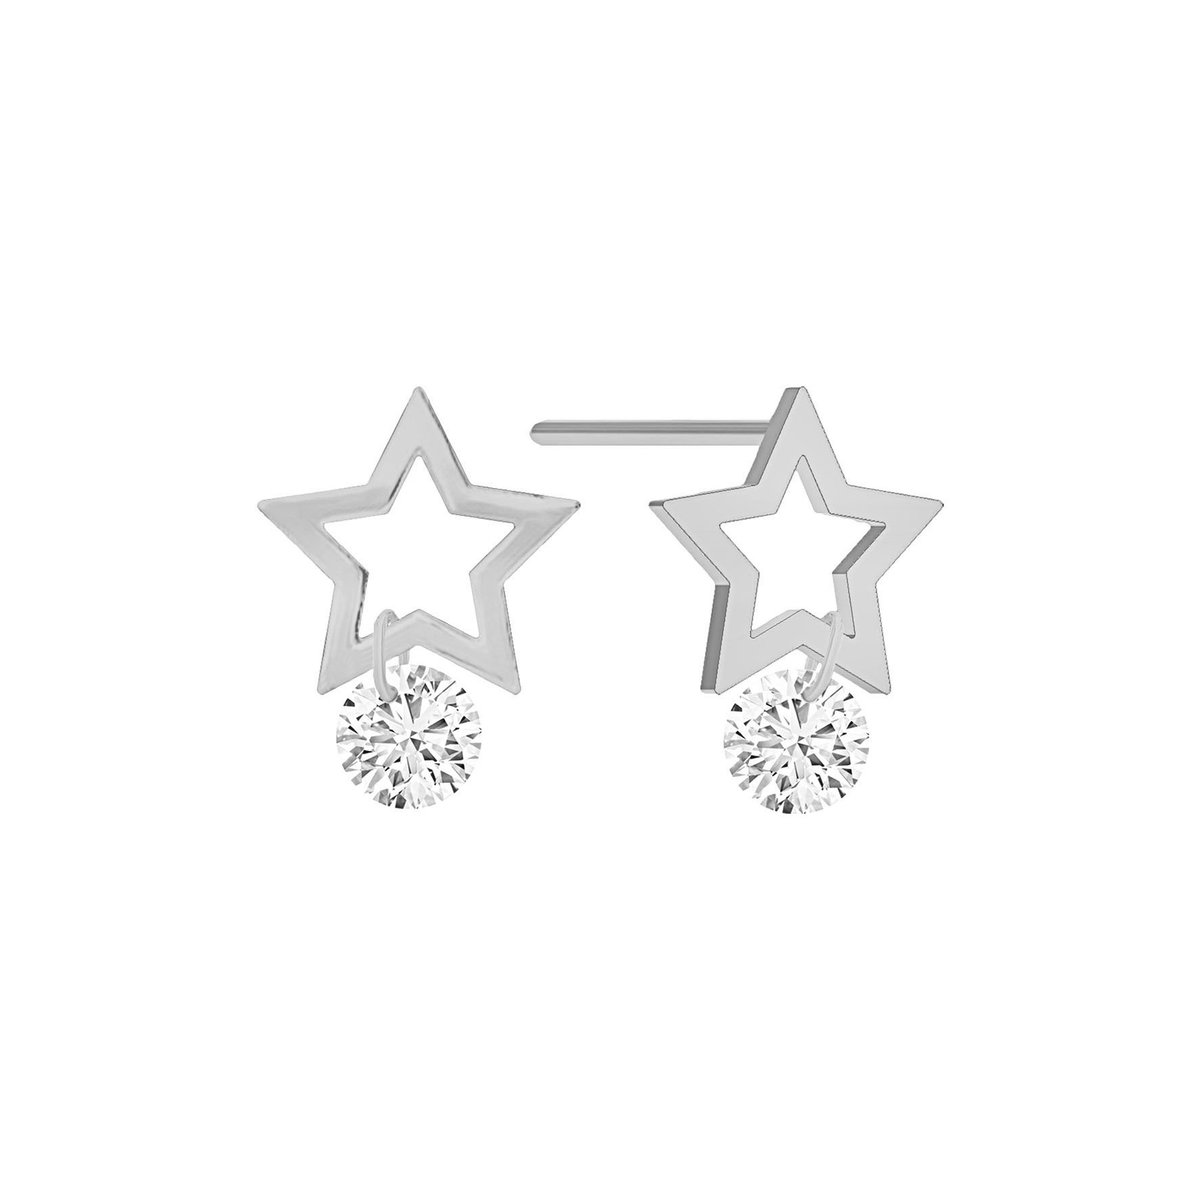 Starry Diamond Earring